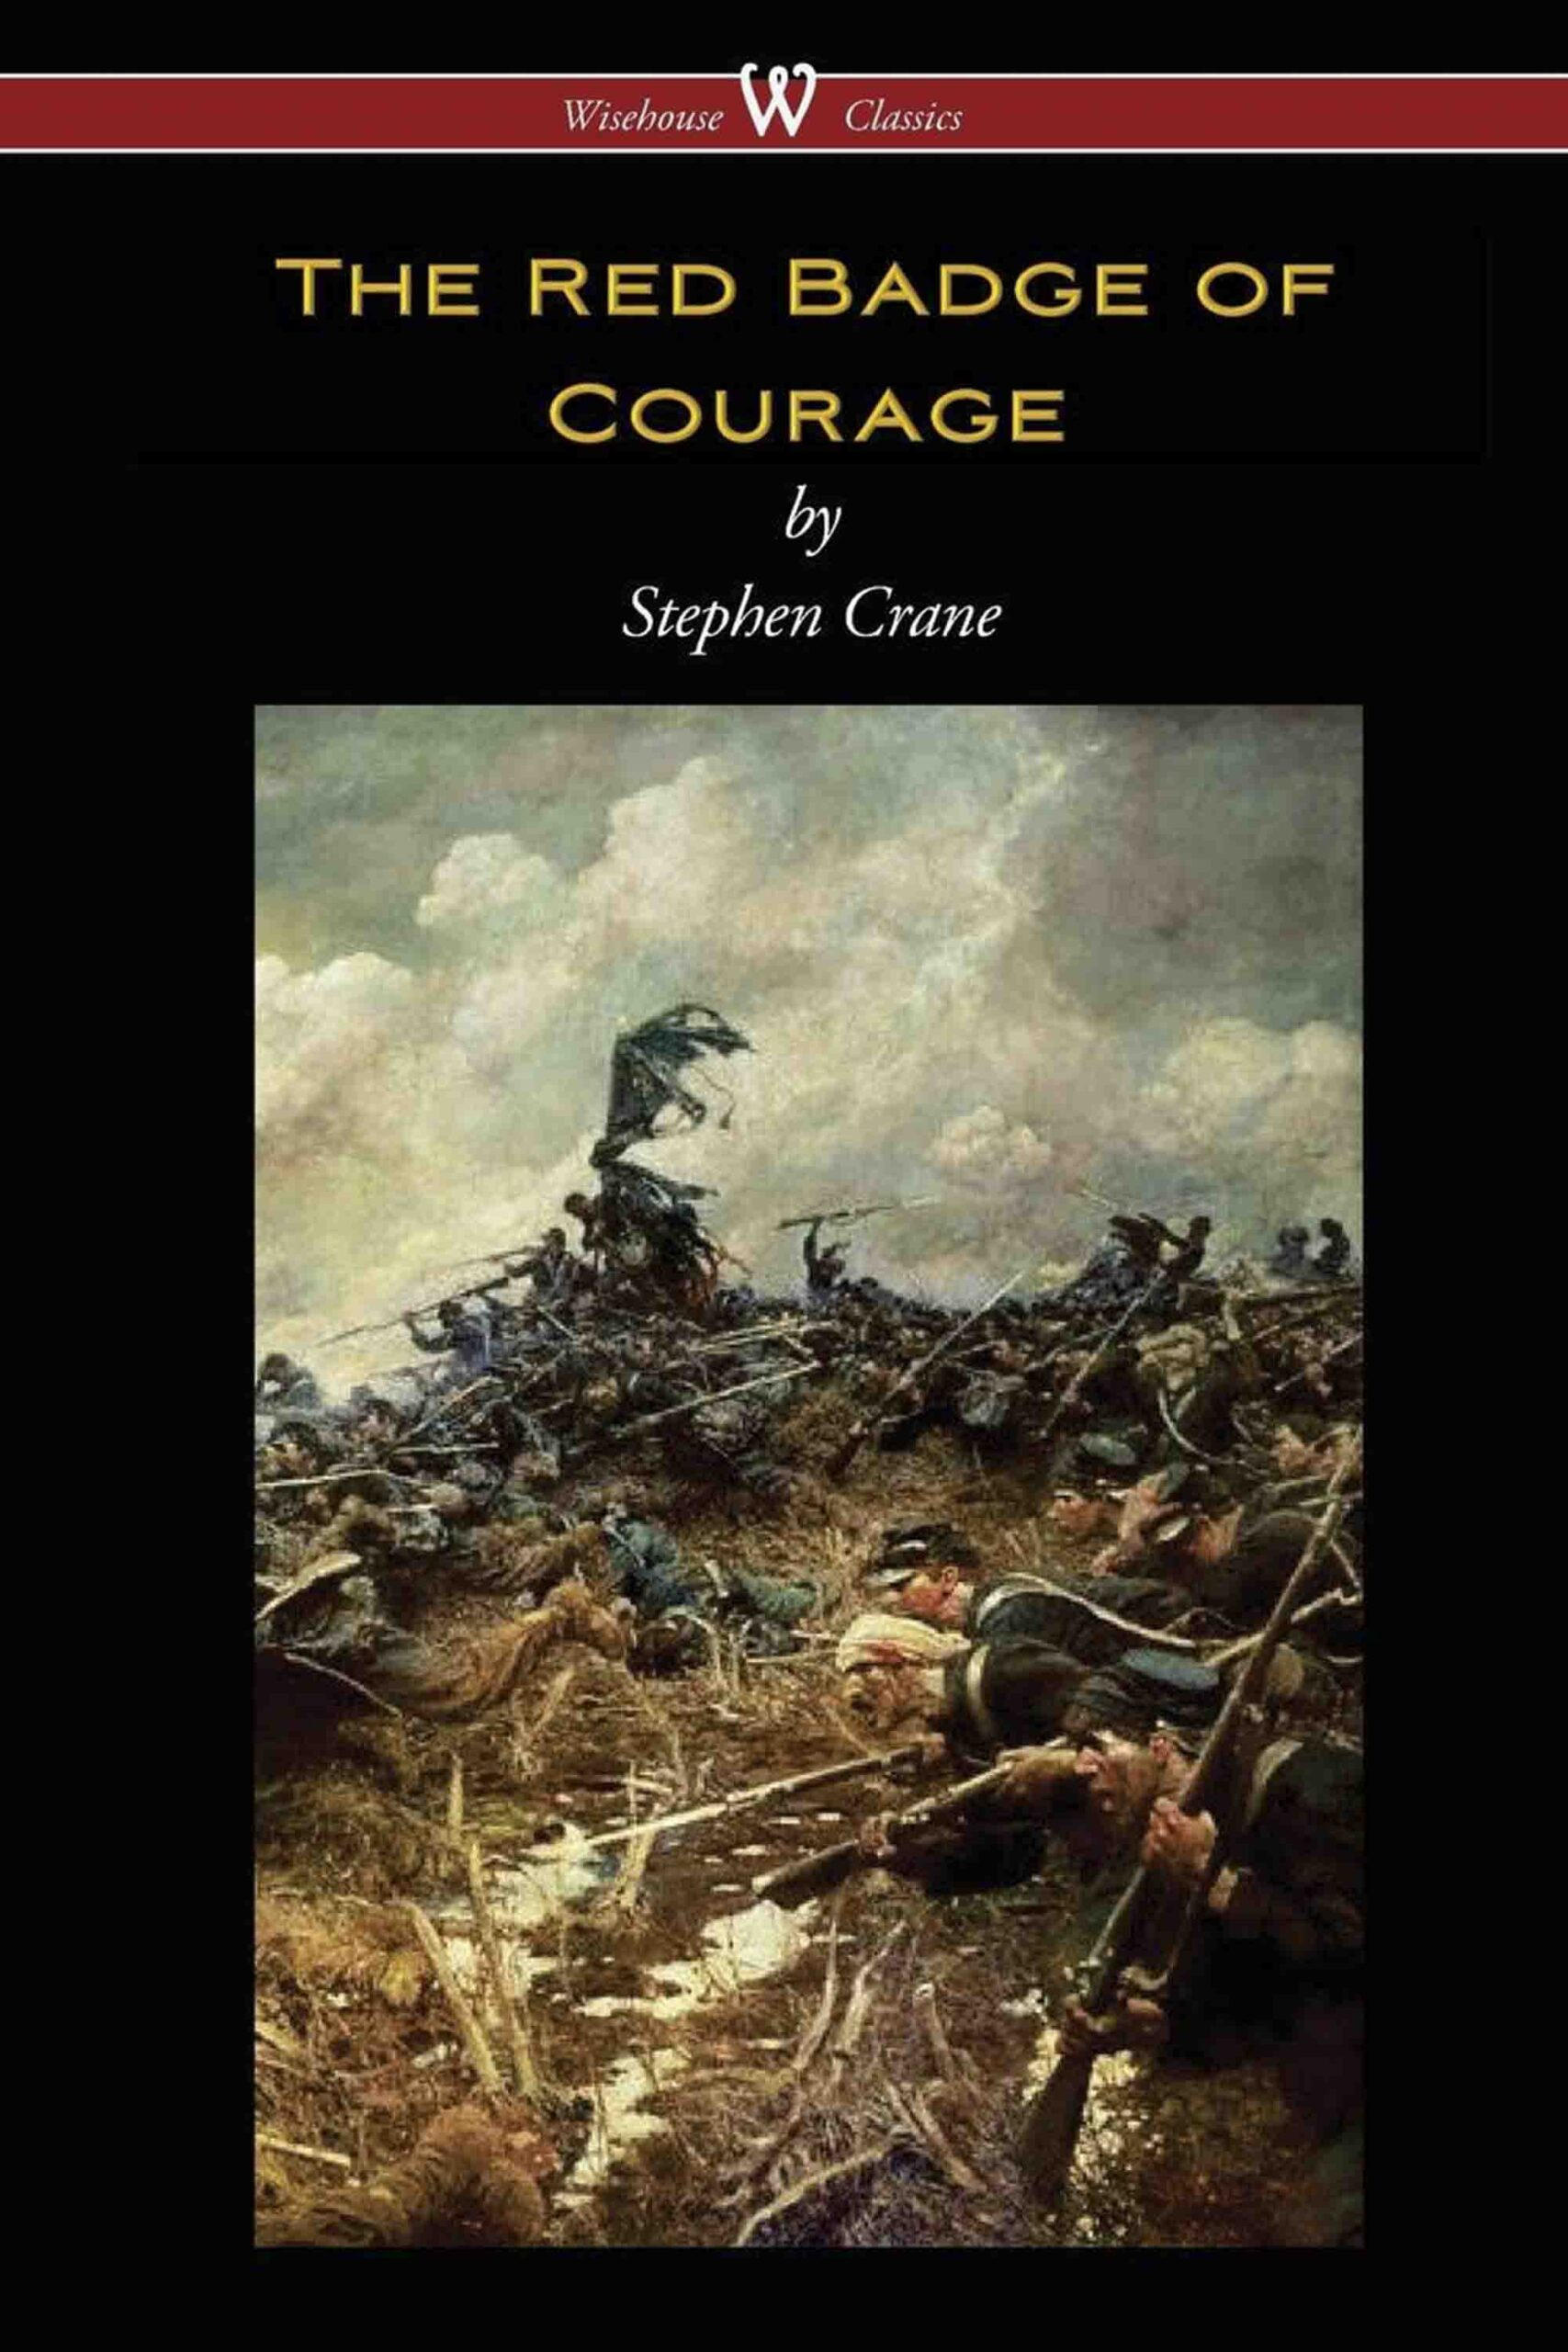 The Red Badge of Courage (Wisehouse Classics Edition)